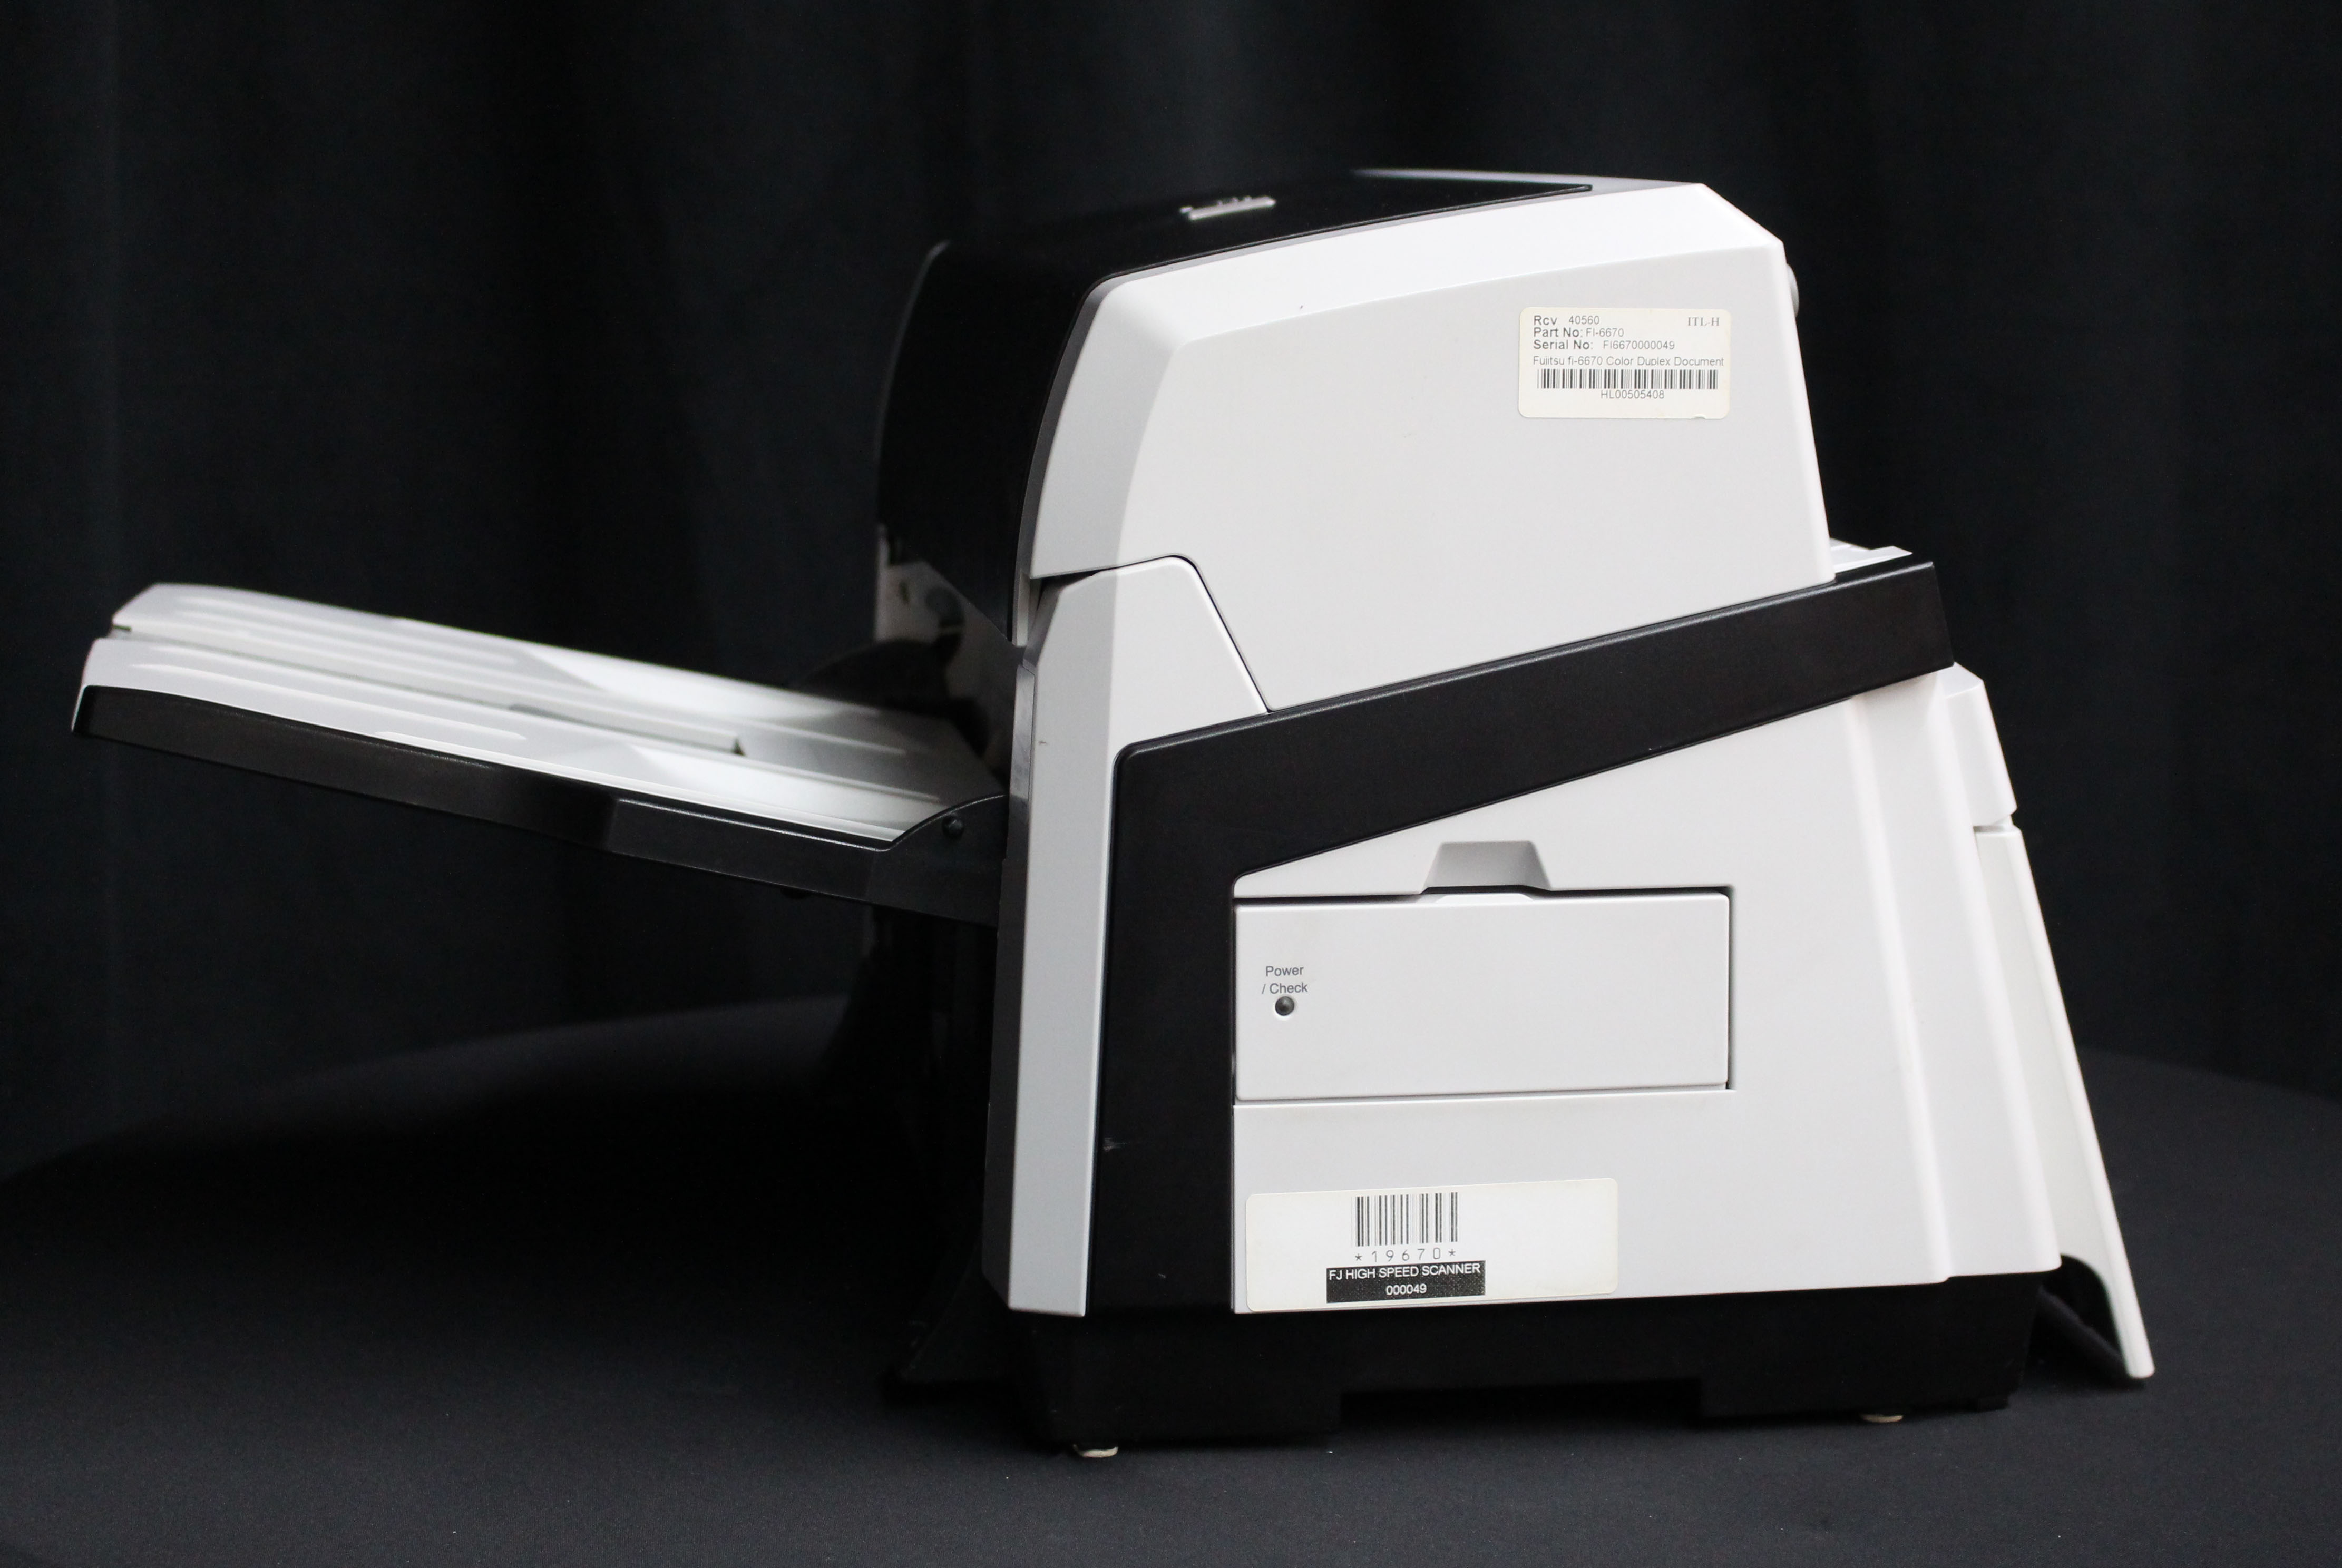 FUJITSU HIGH-SPEED SCANNER